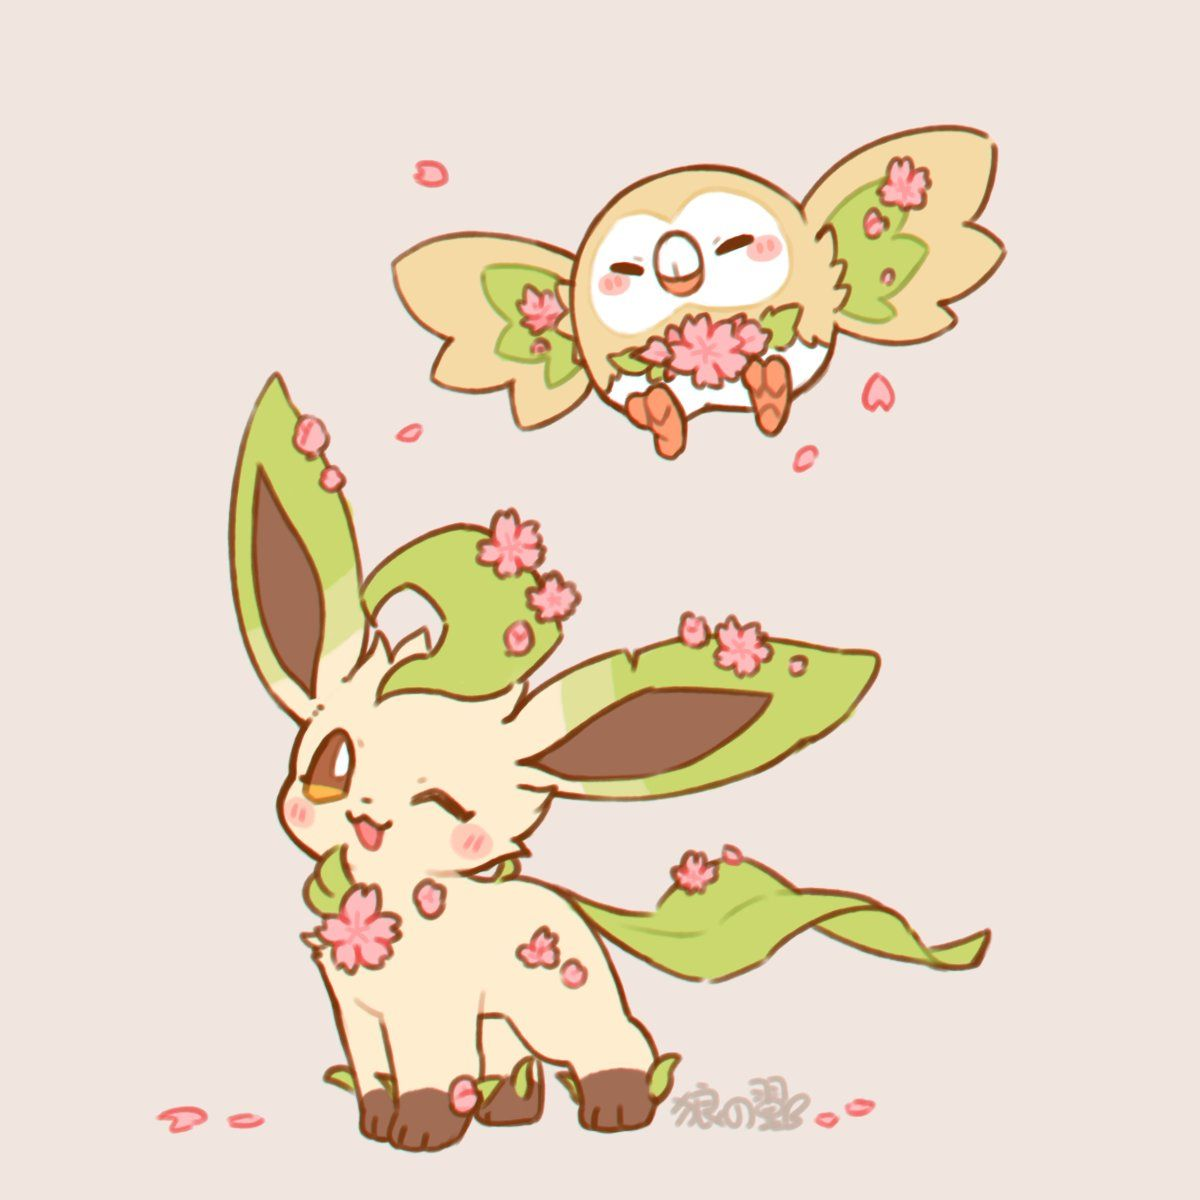 Leafeon Cute Pokemon Wallpaper Pokemon Eeveelutions Baby Pokemon